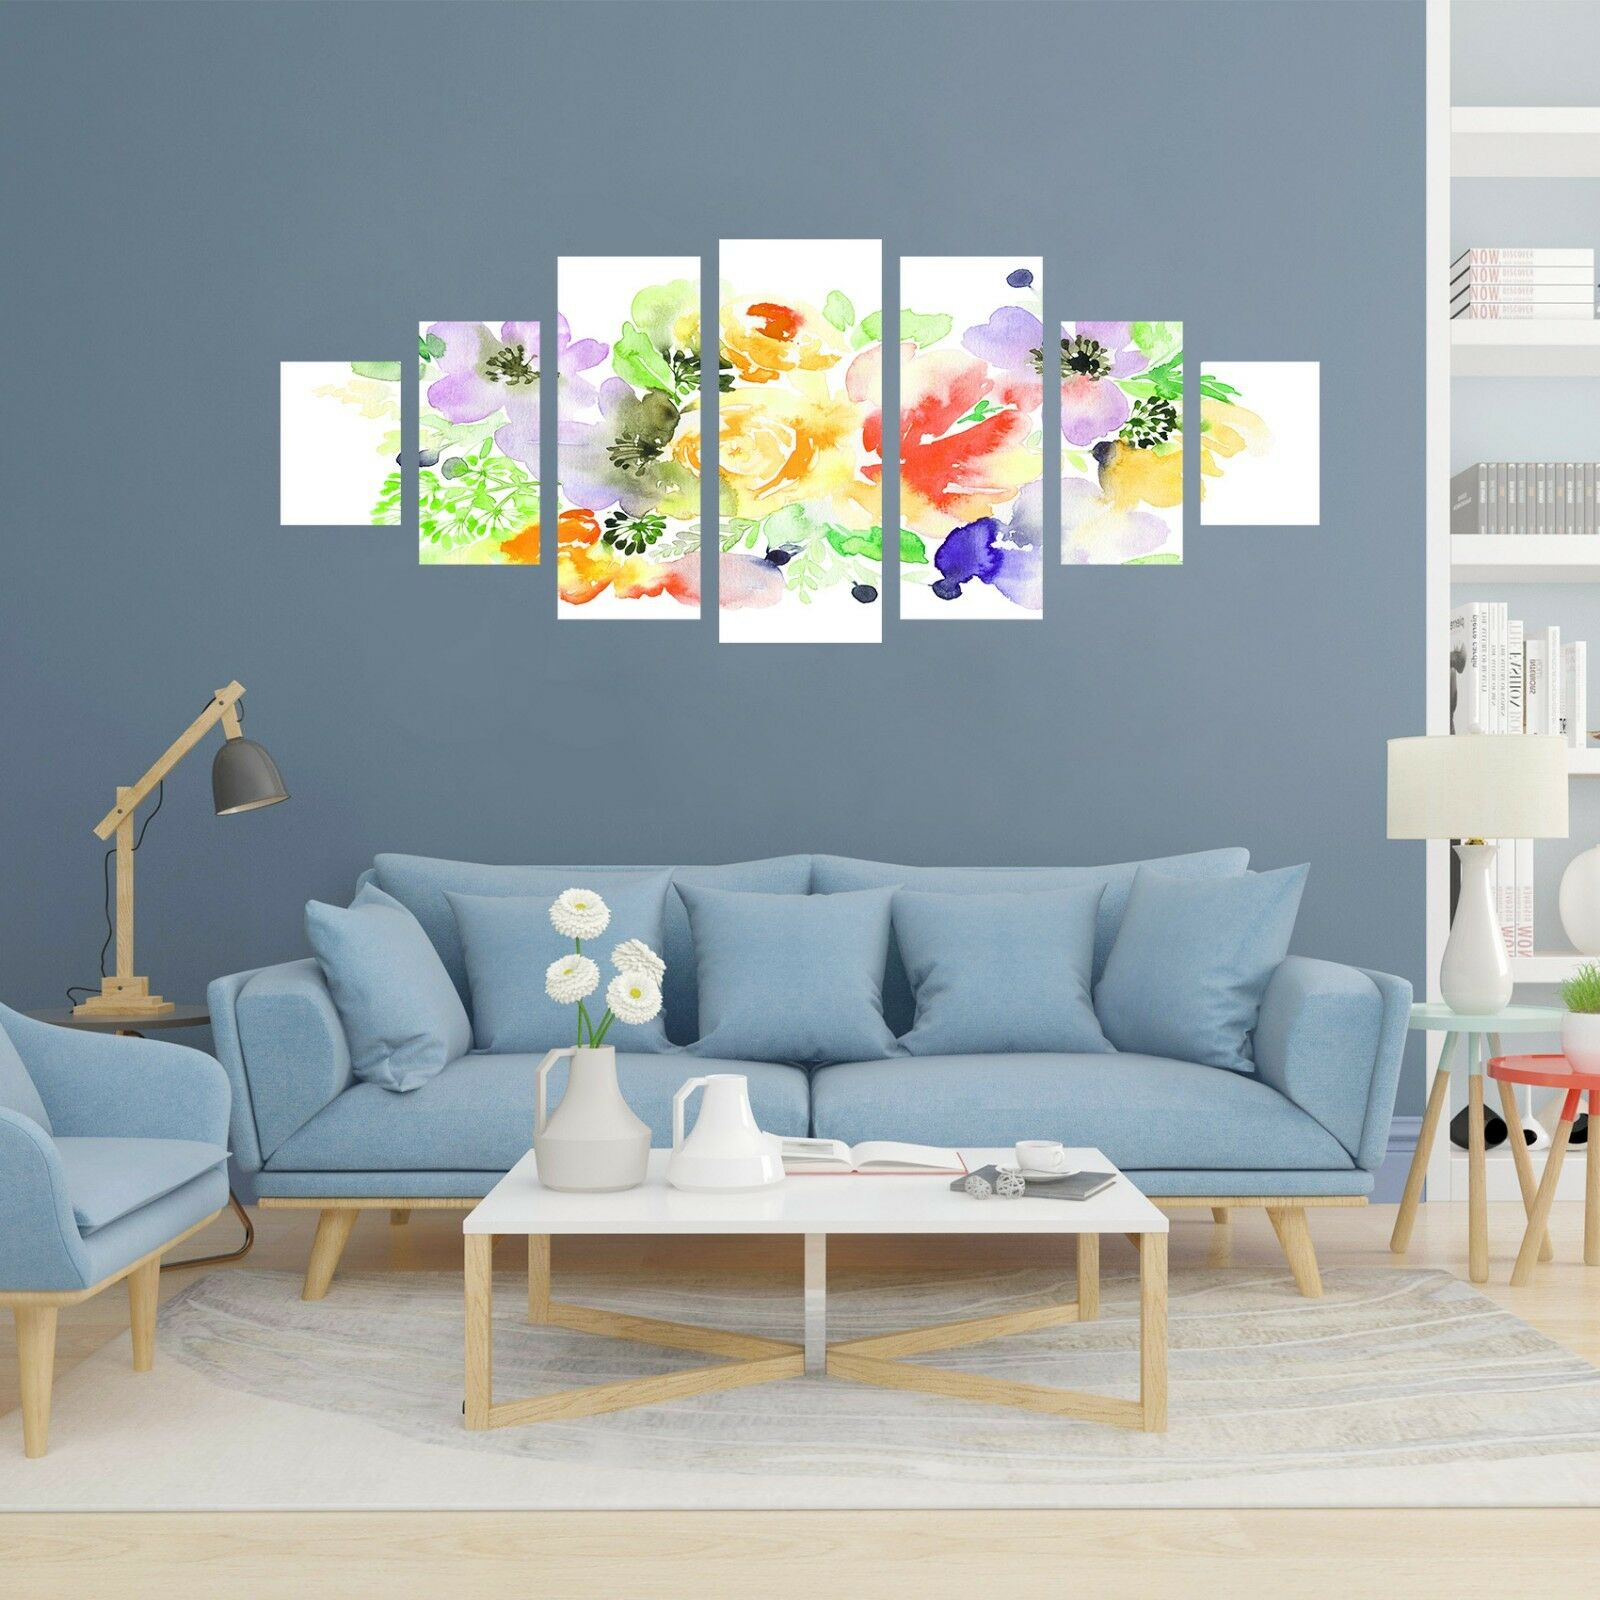 3D Painted Flowers 567 Unframed Print Wall Paper Decal Wall Deco Indoor AJ Wall